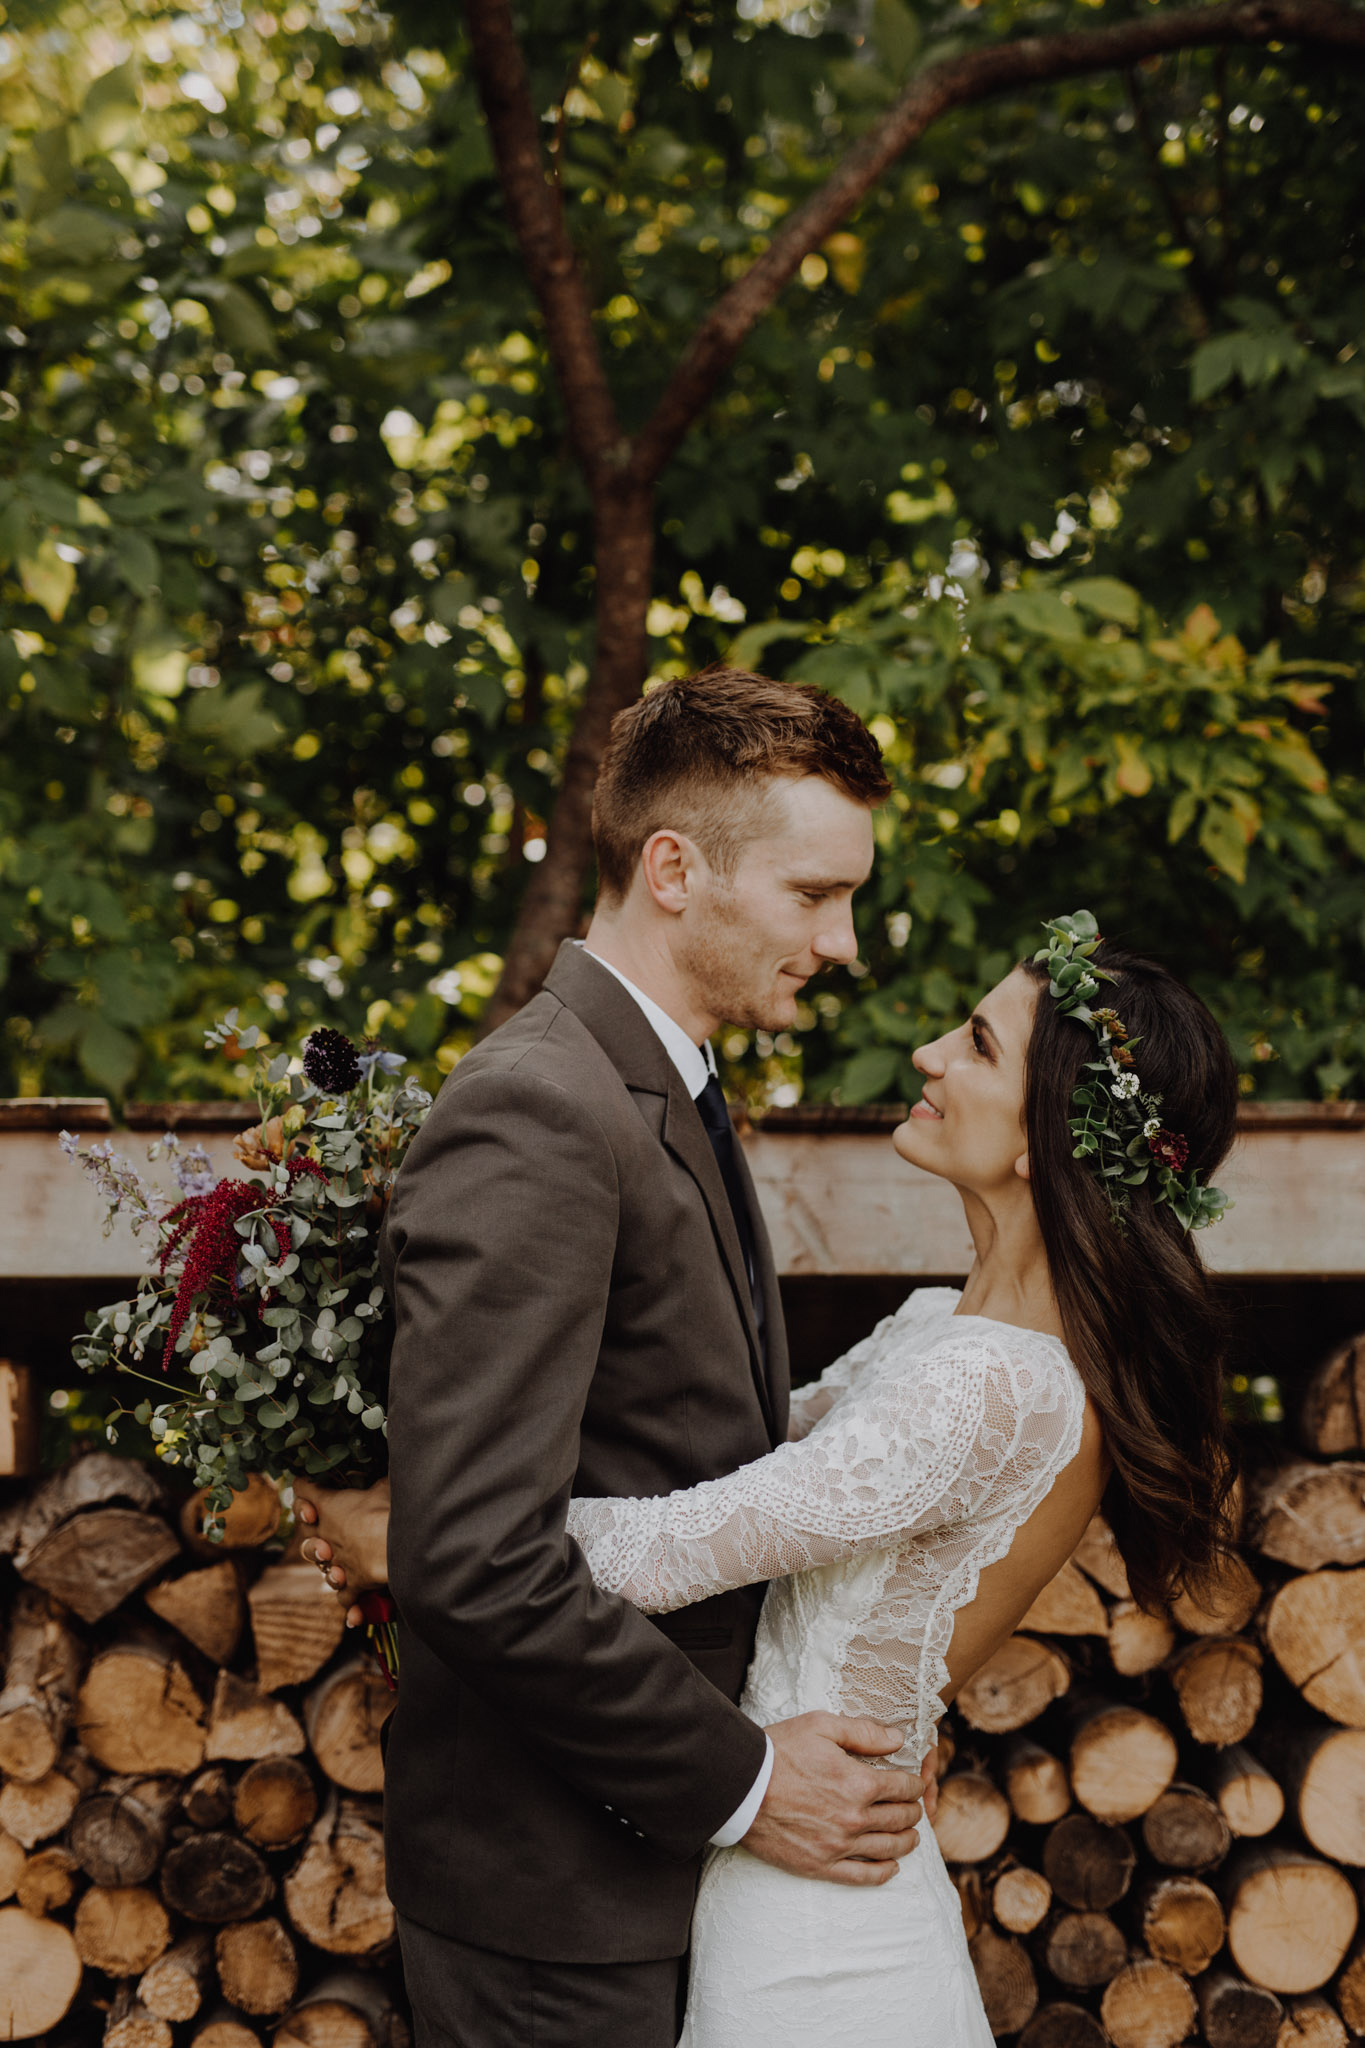 Outdoor Camp Wedding - bride and groom in nature